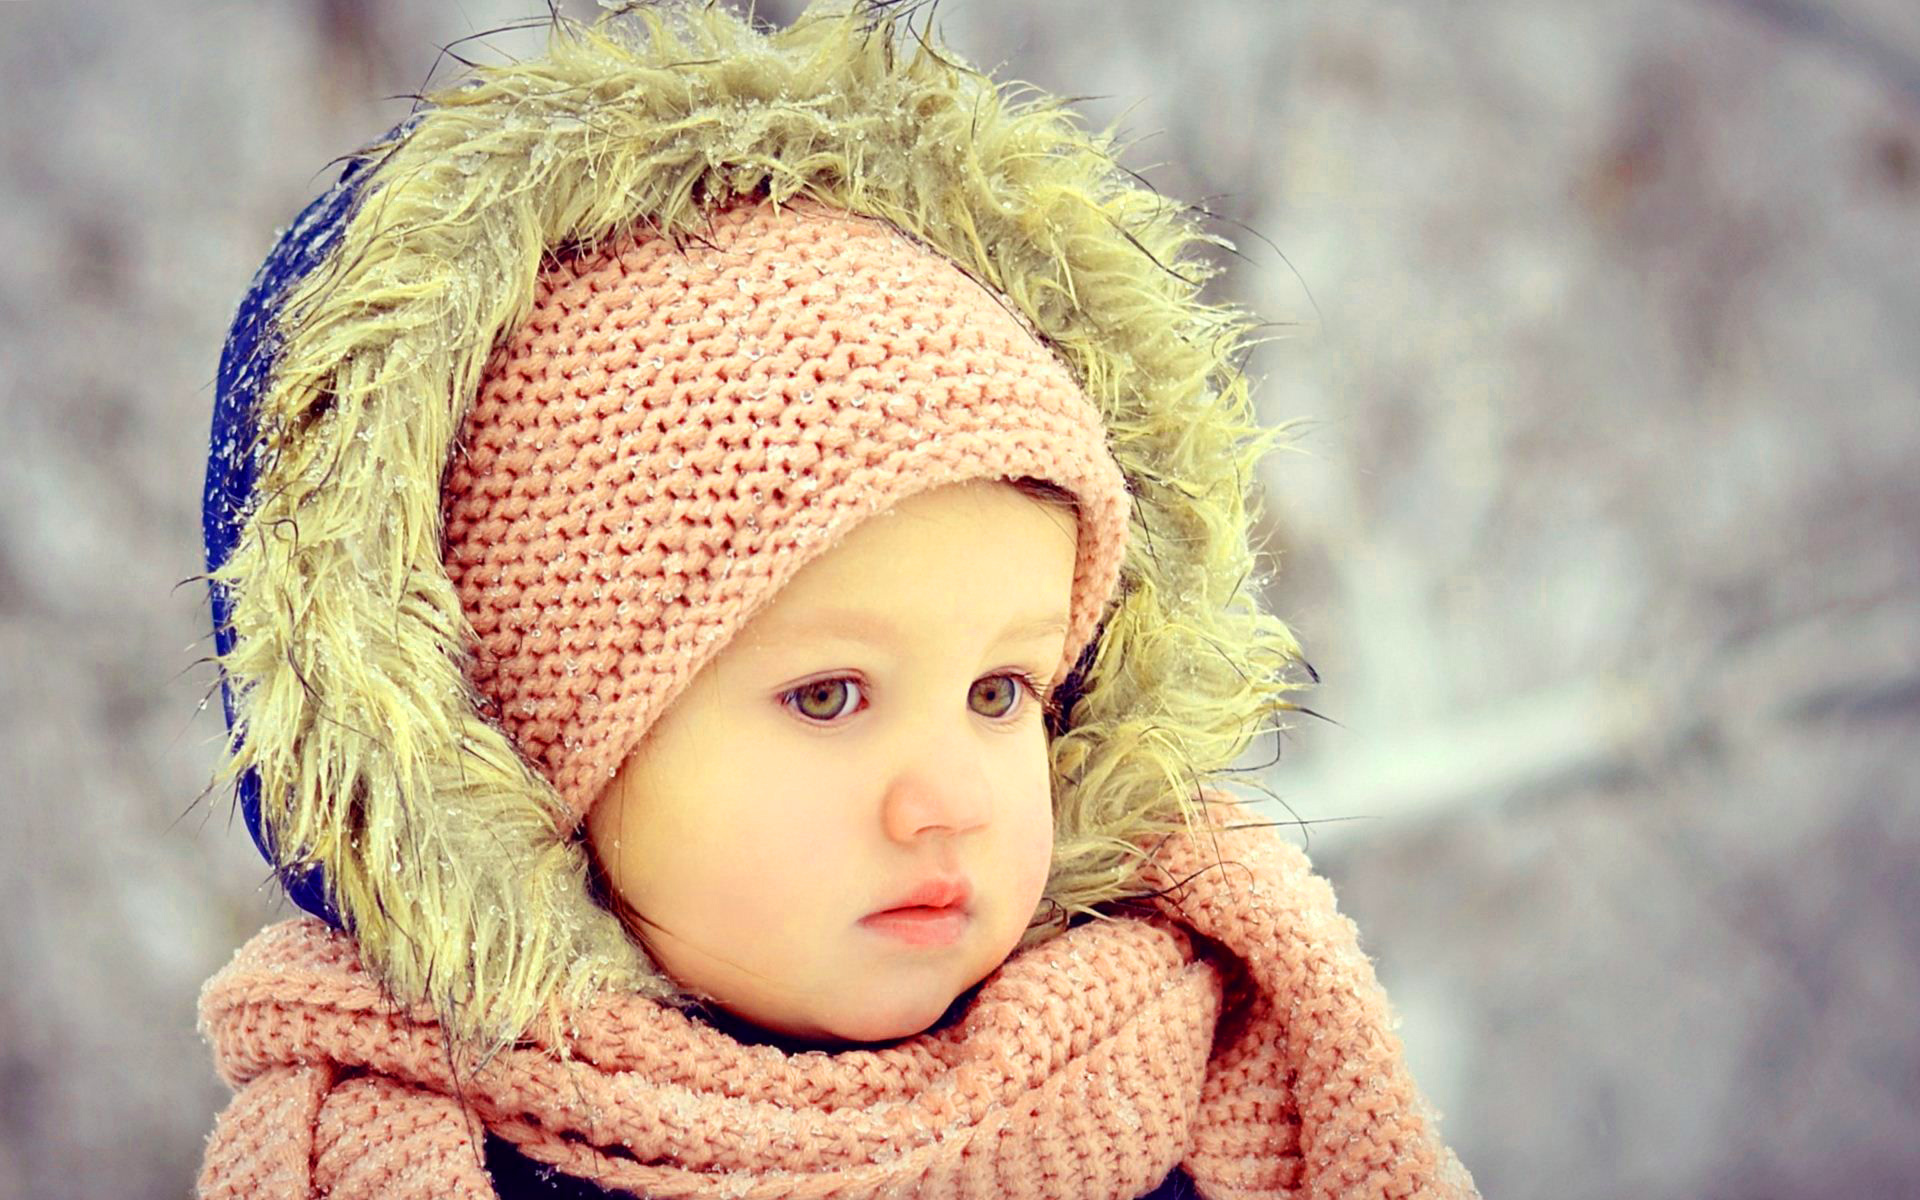 Cute baby boys girls images wallpaper pictures download